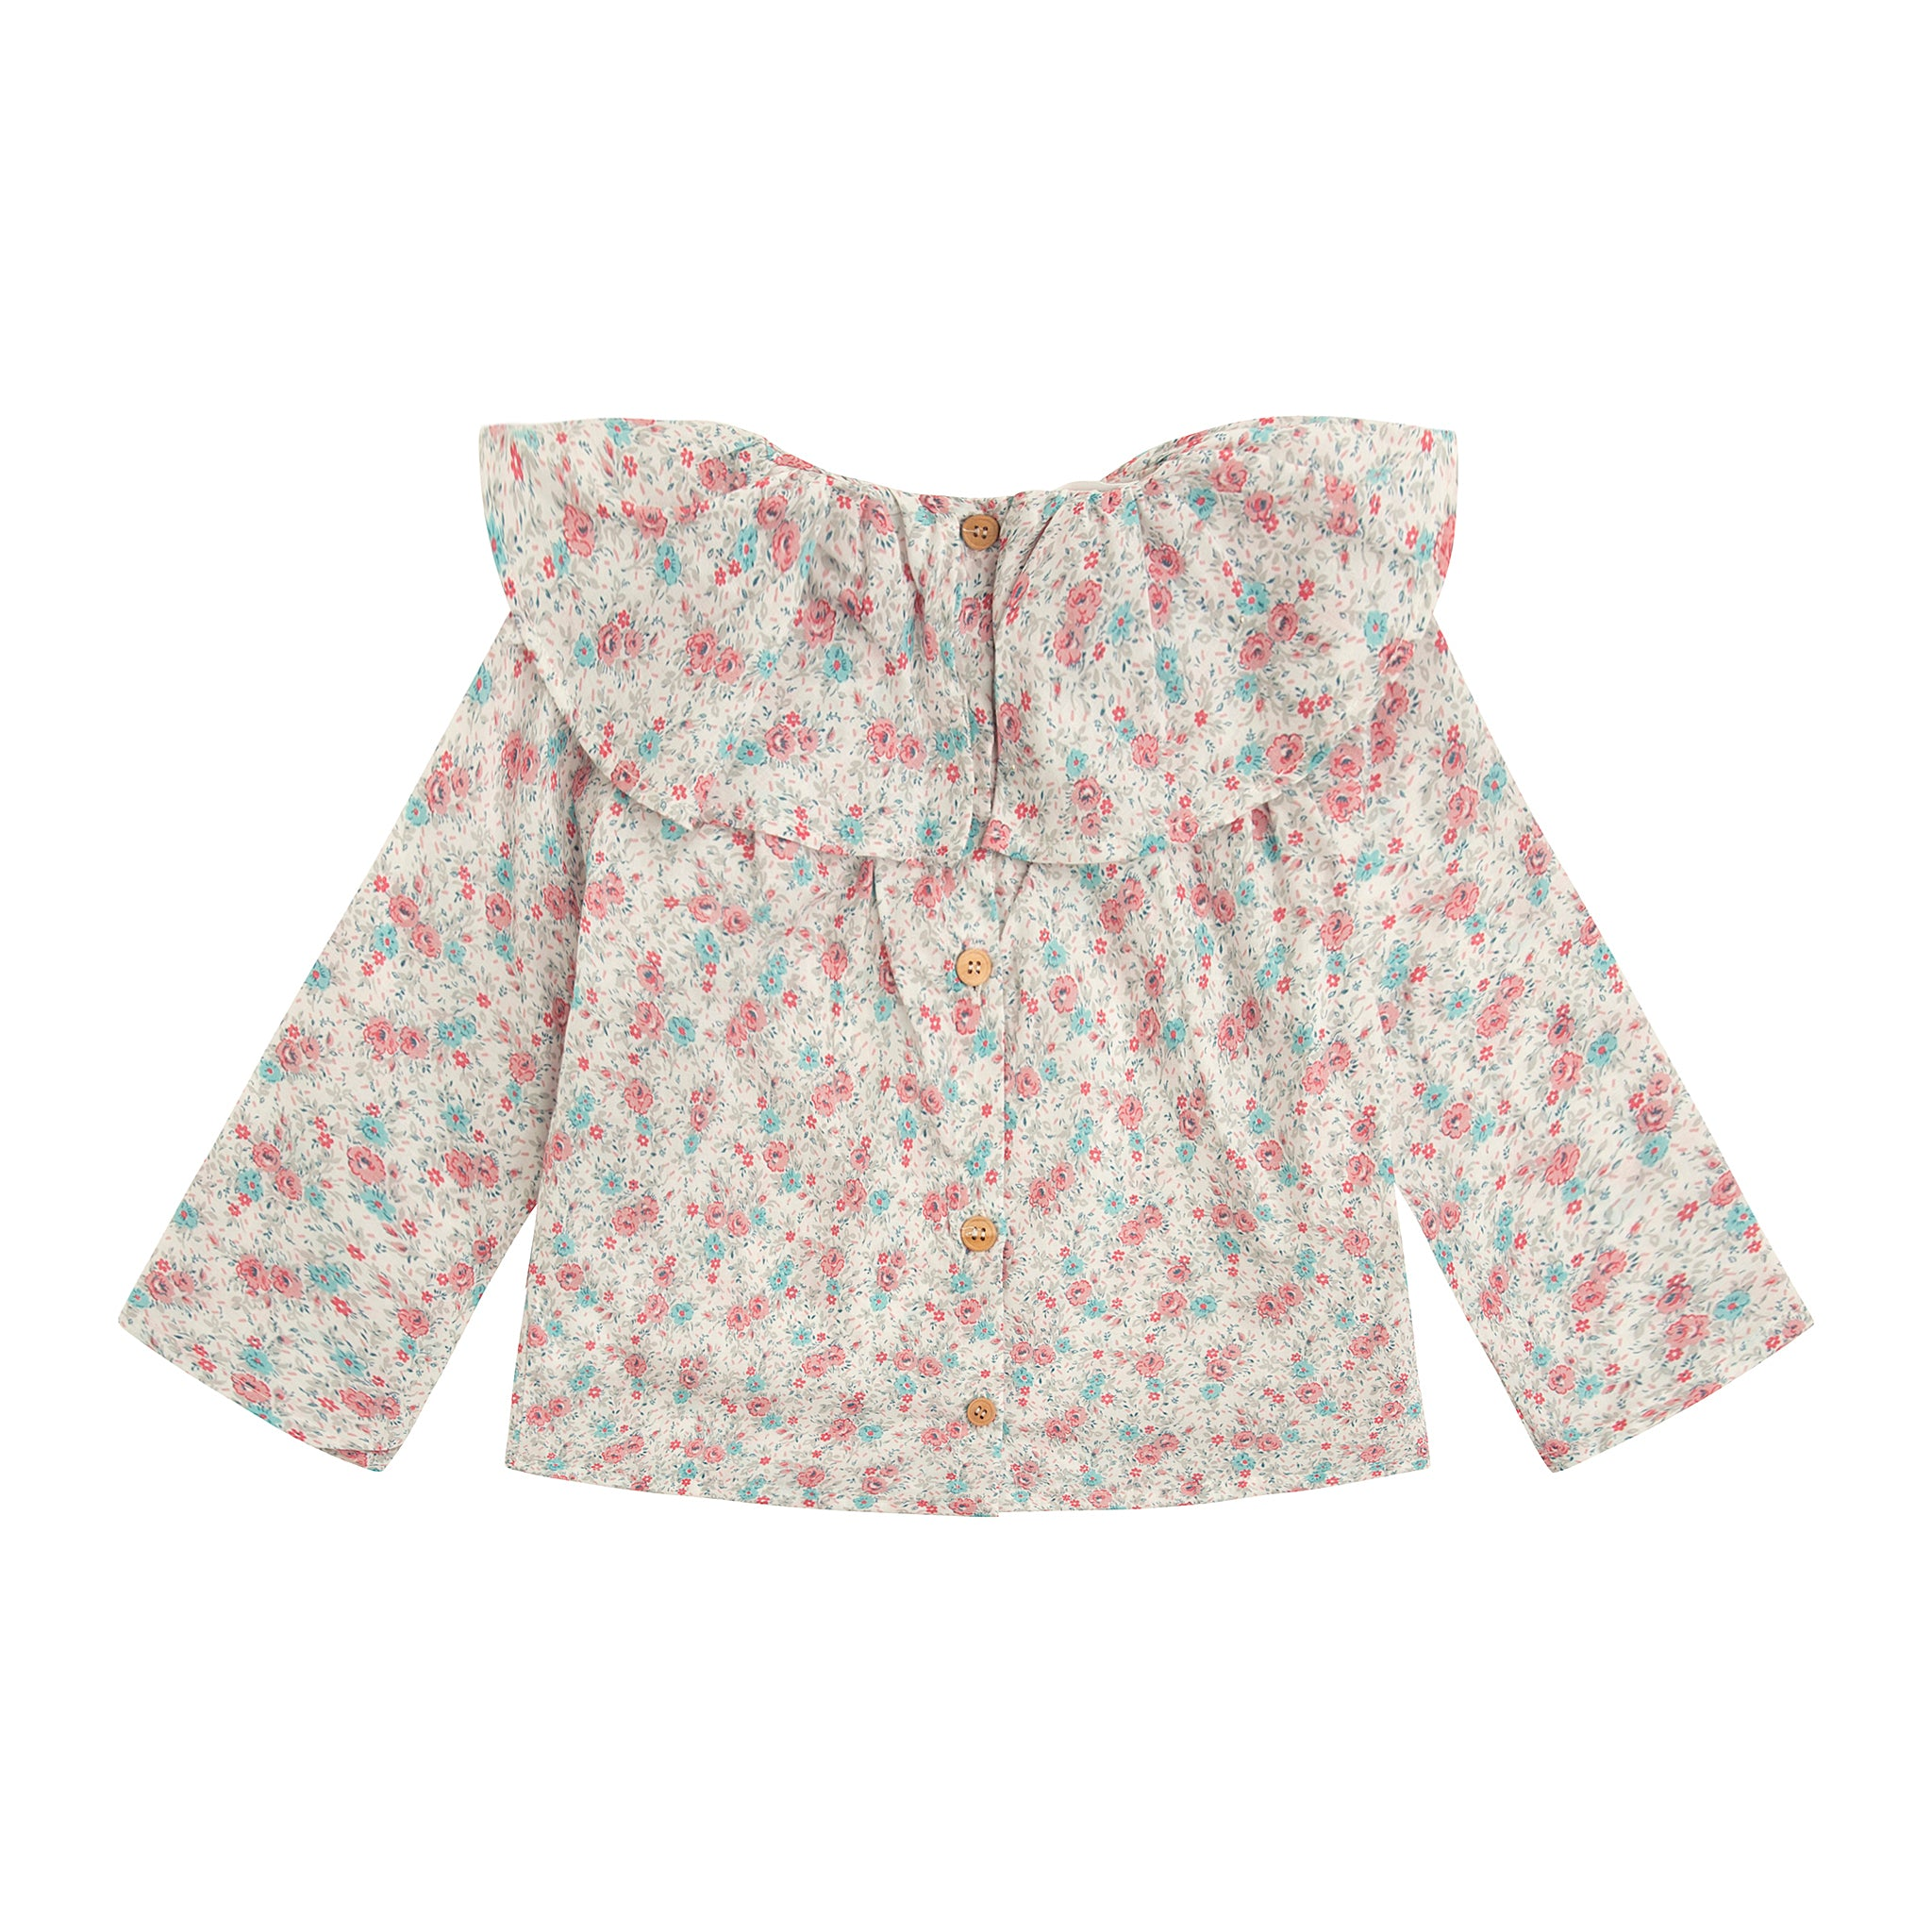 girl blouse in floral print with wide ruffle collar and wooden buttons down the back.